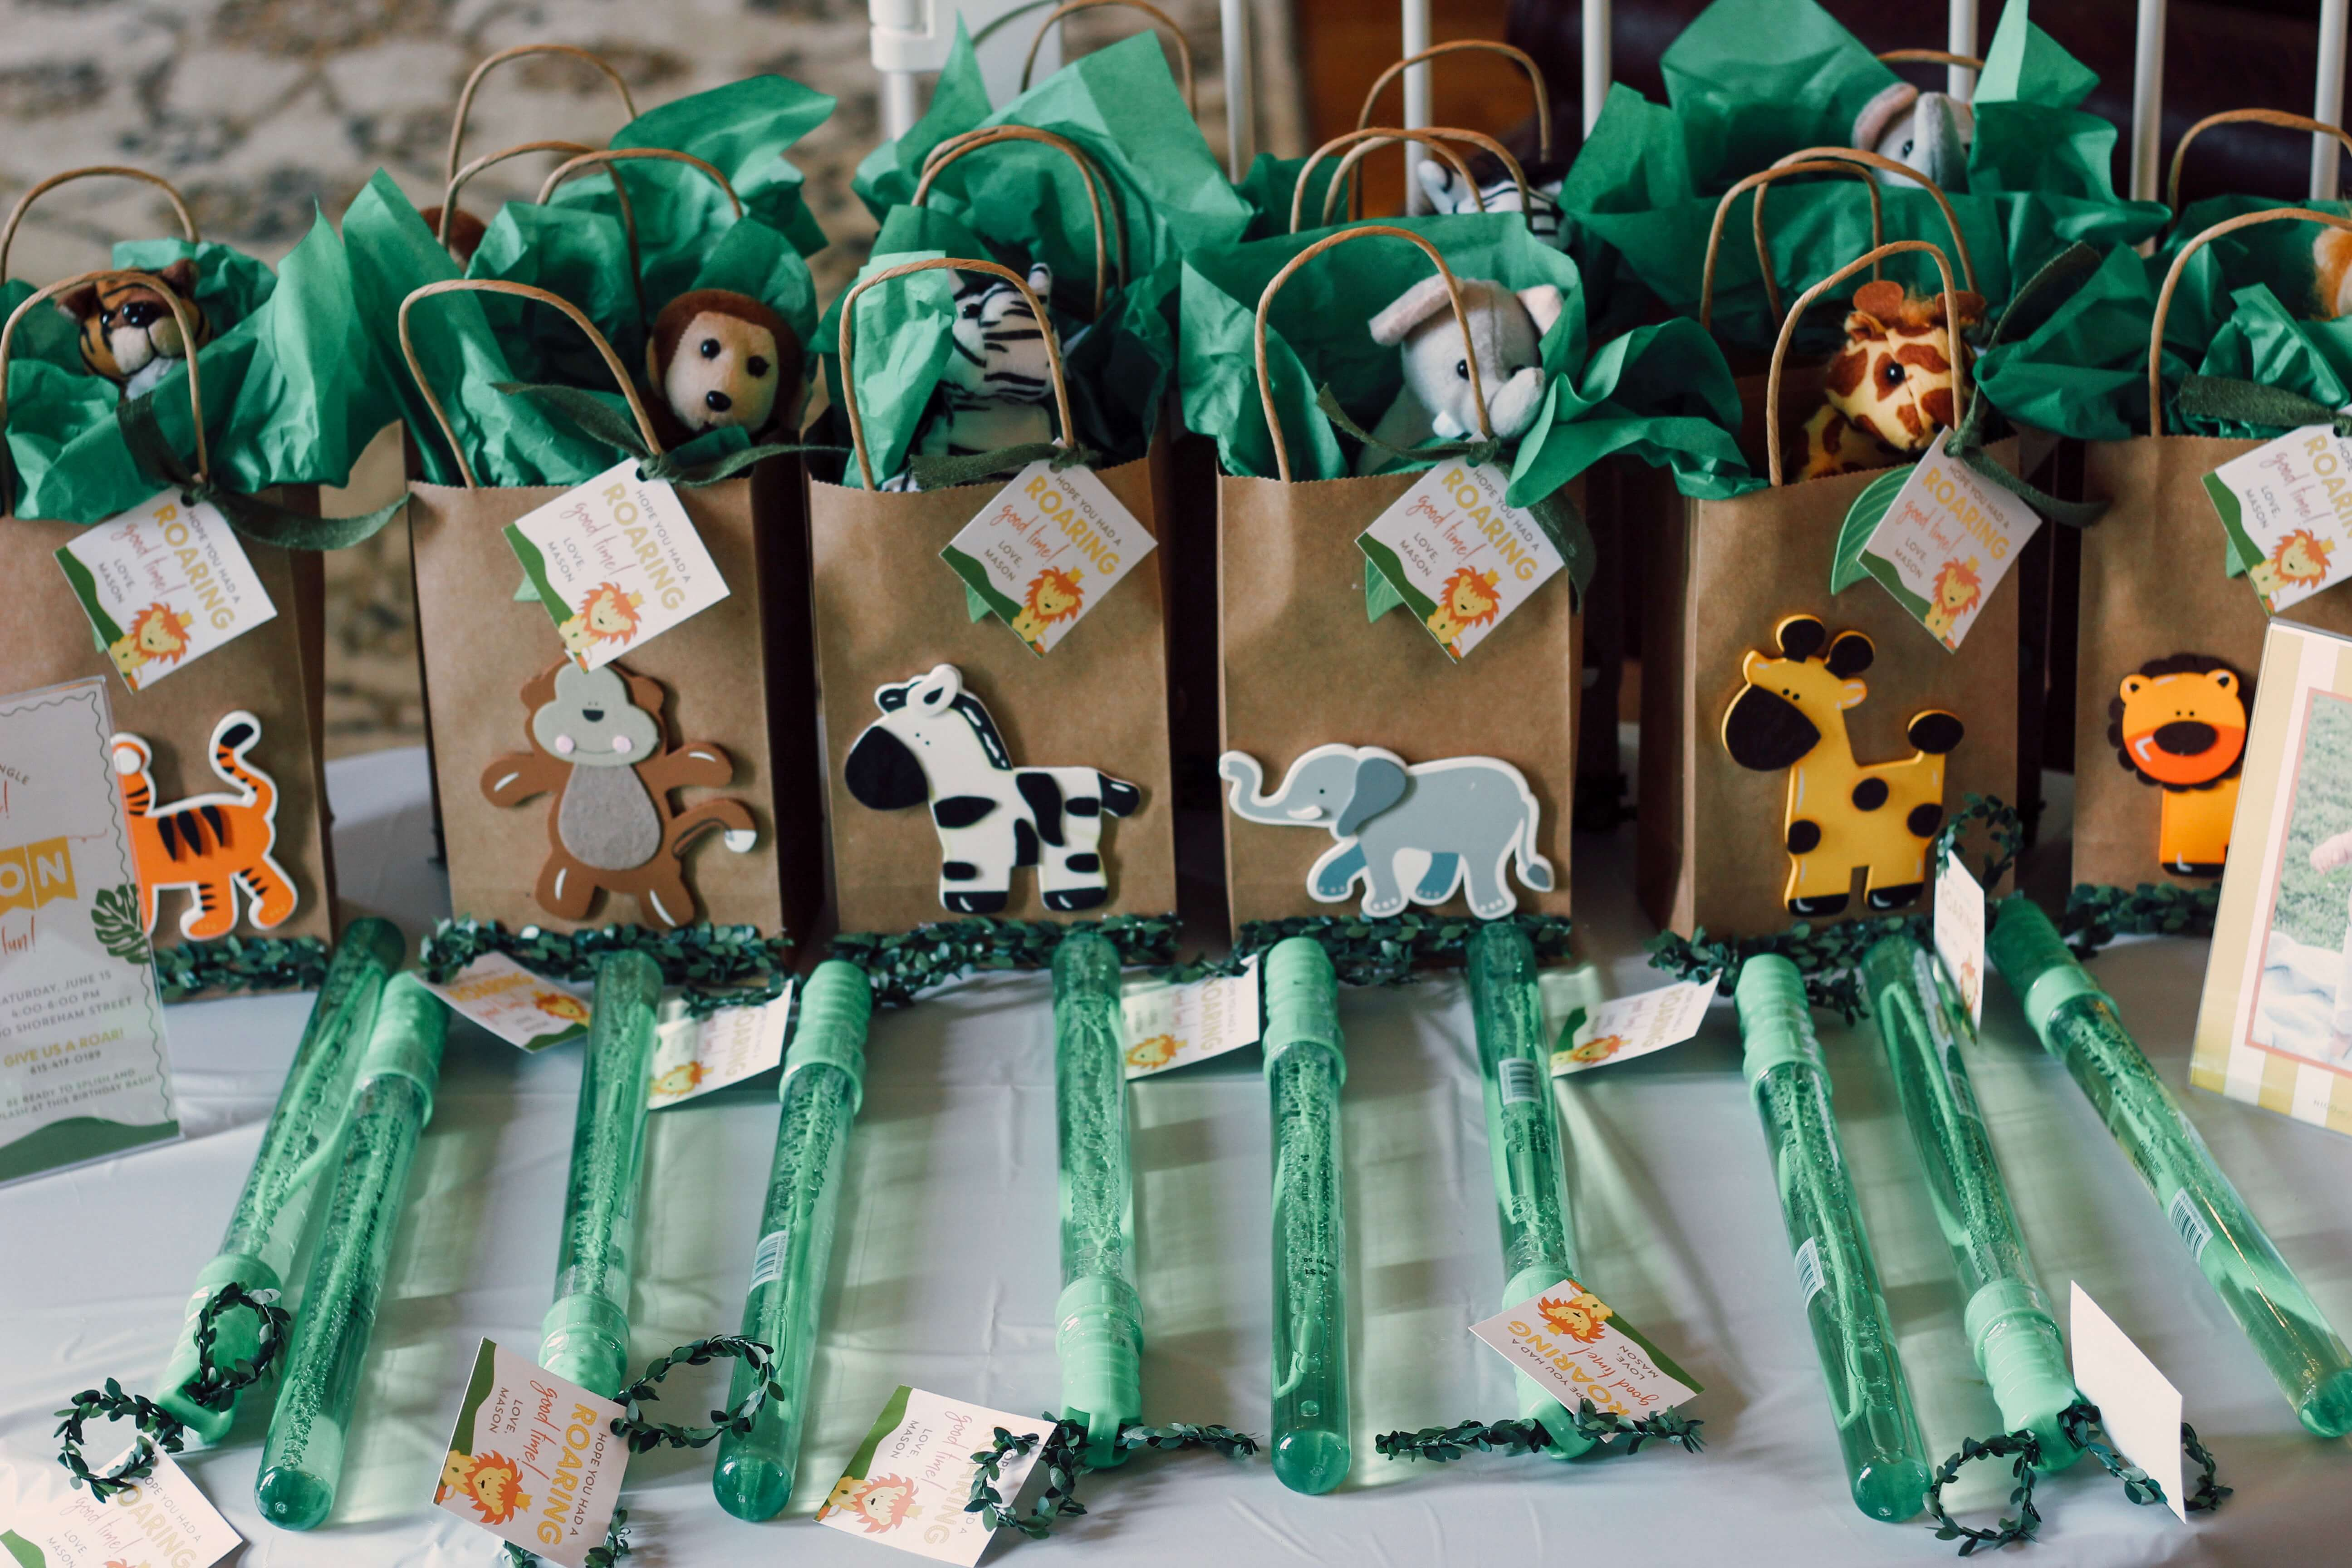 King of the jungle party favors